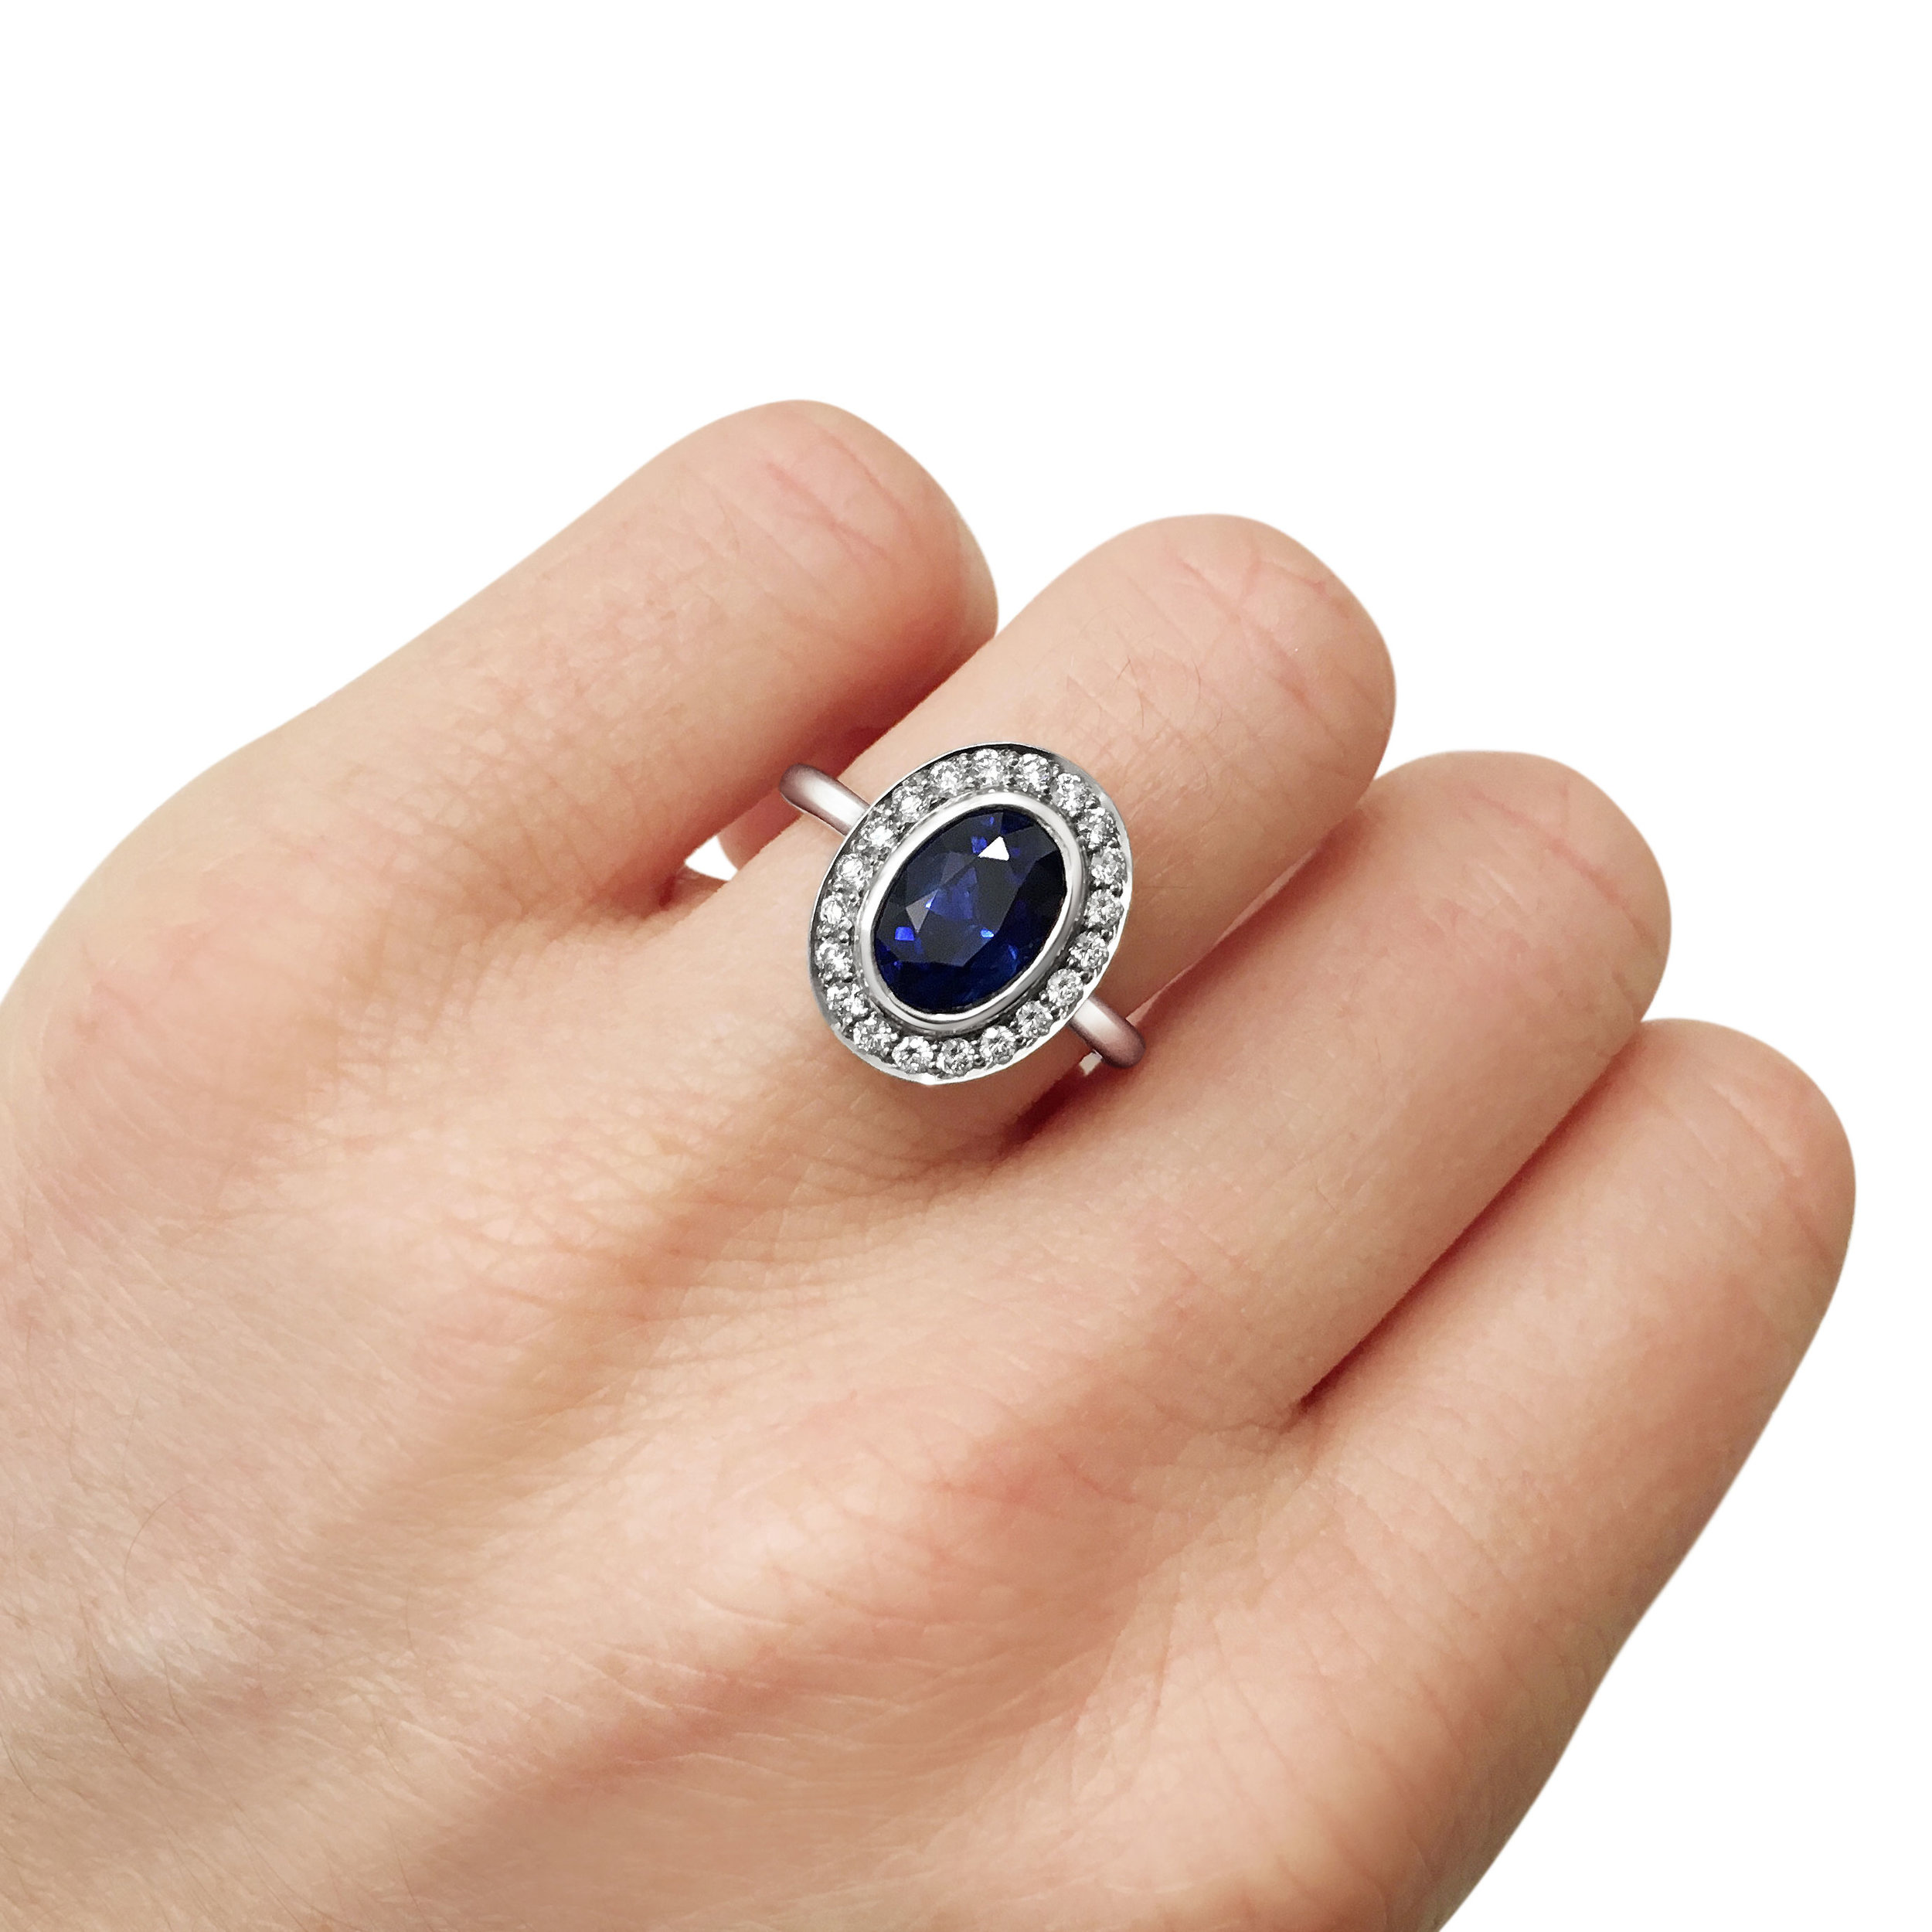 Oval sapphire with diamond halo engagement ring, mounted in platinum.